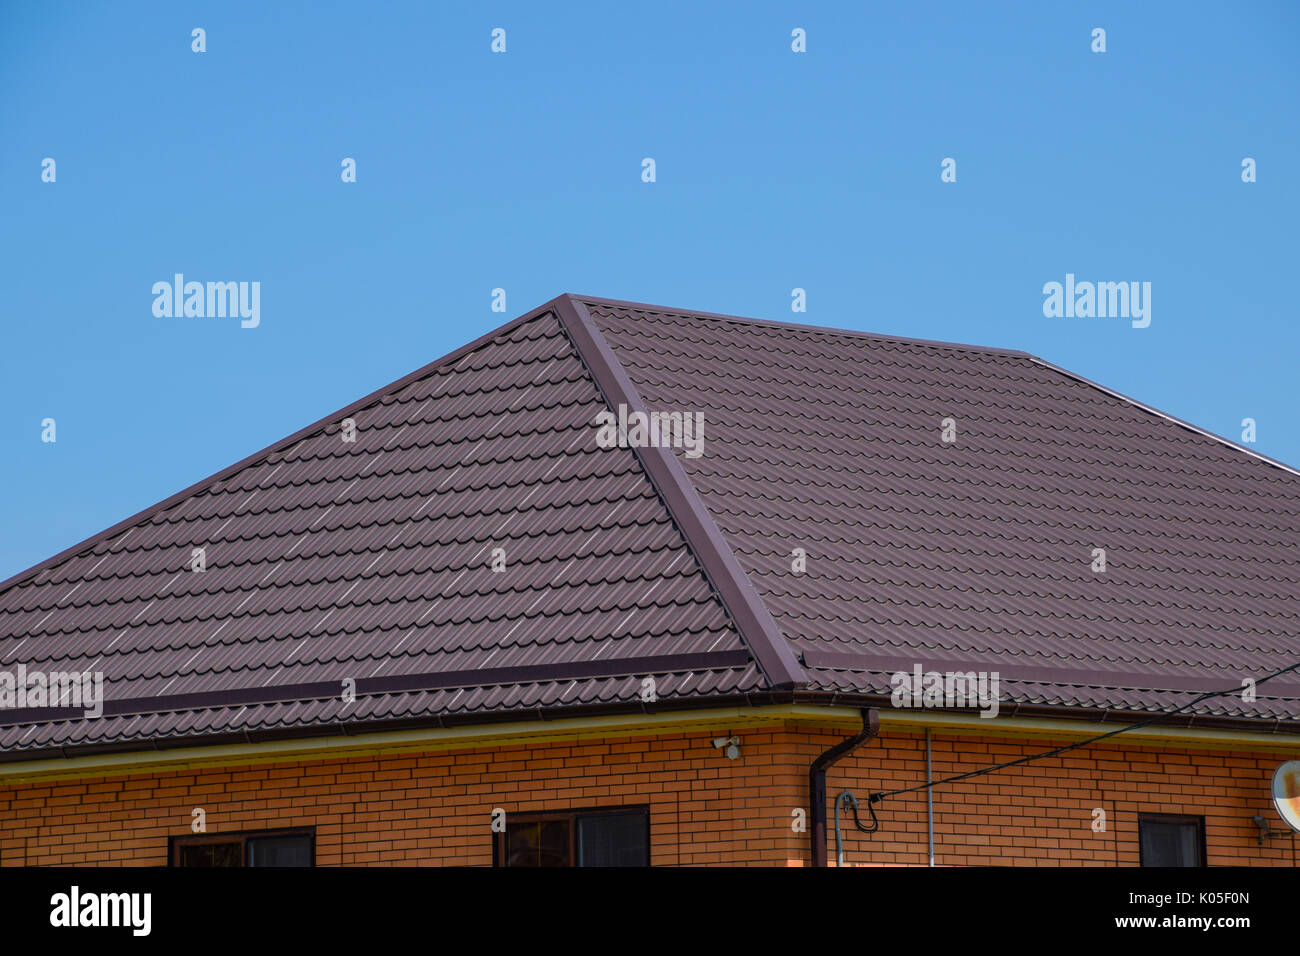 Roof metal sheets modern types of roofing materials stock for Modern roofing materials